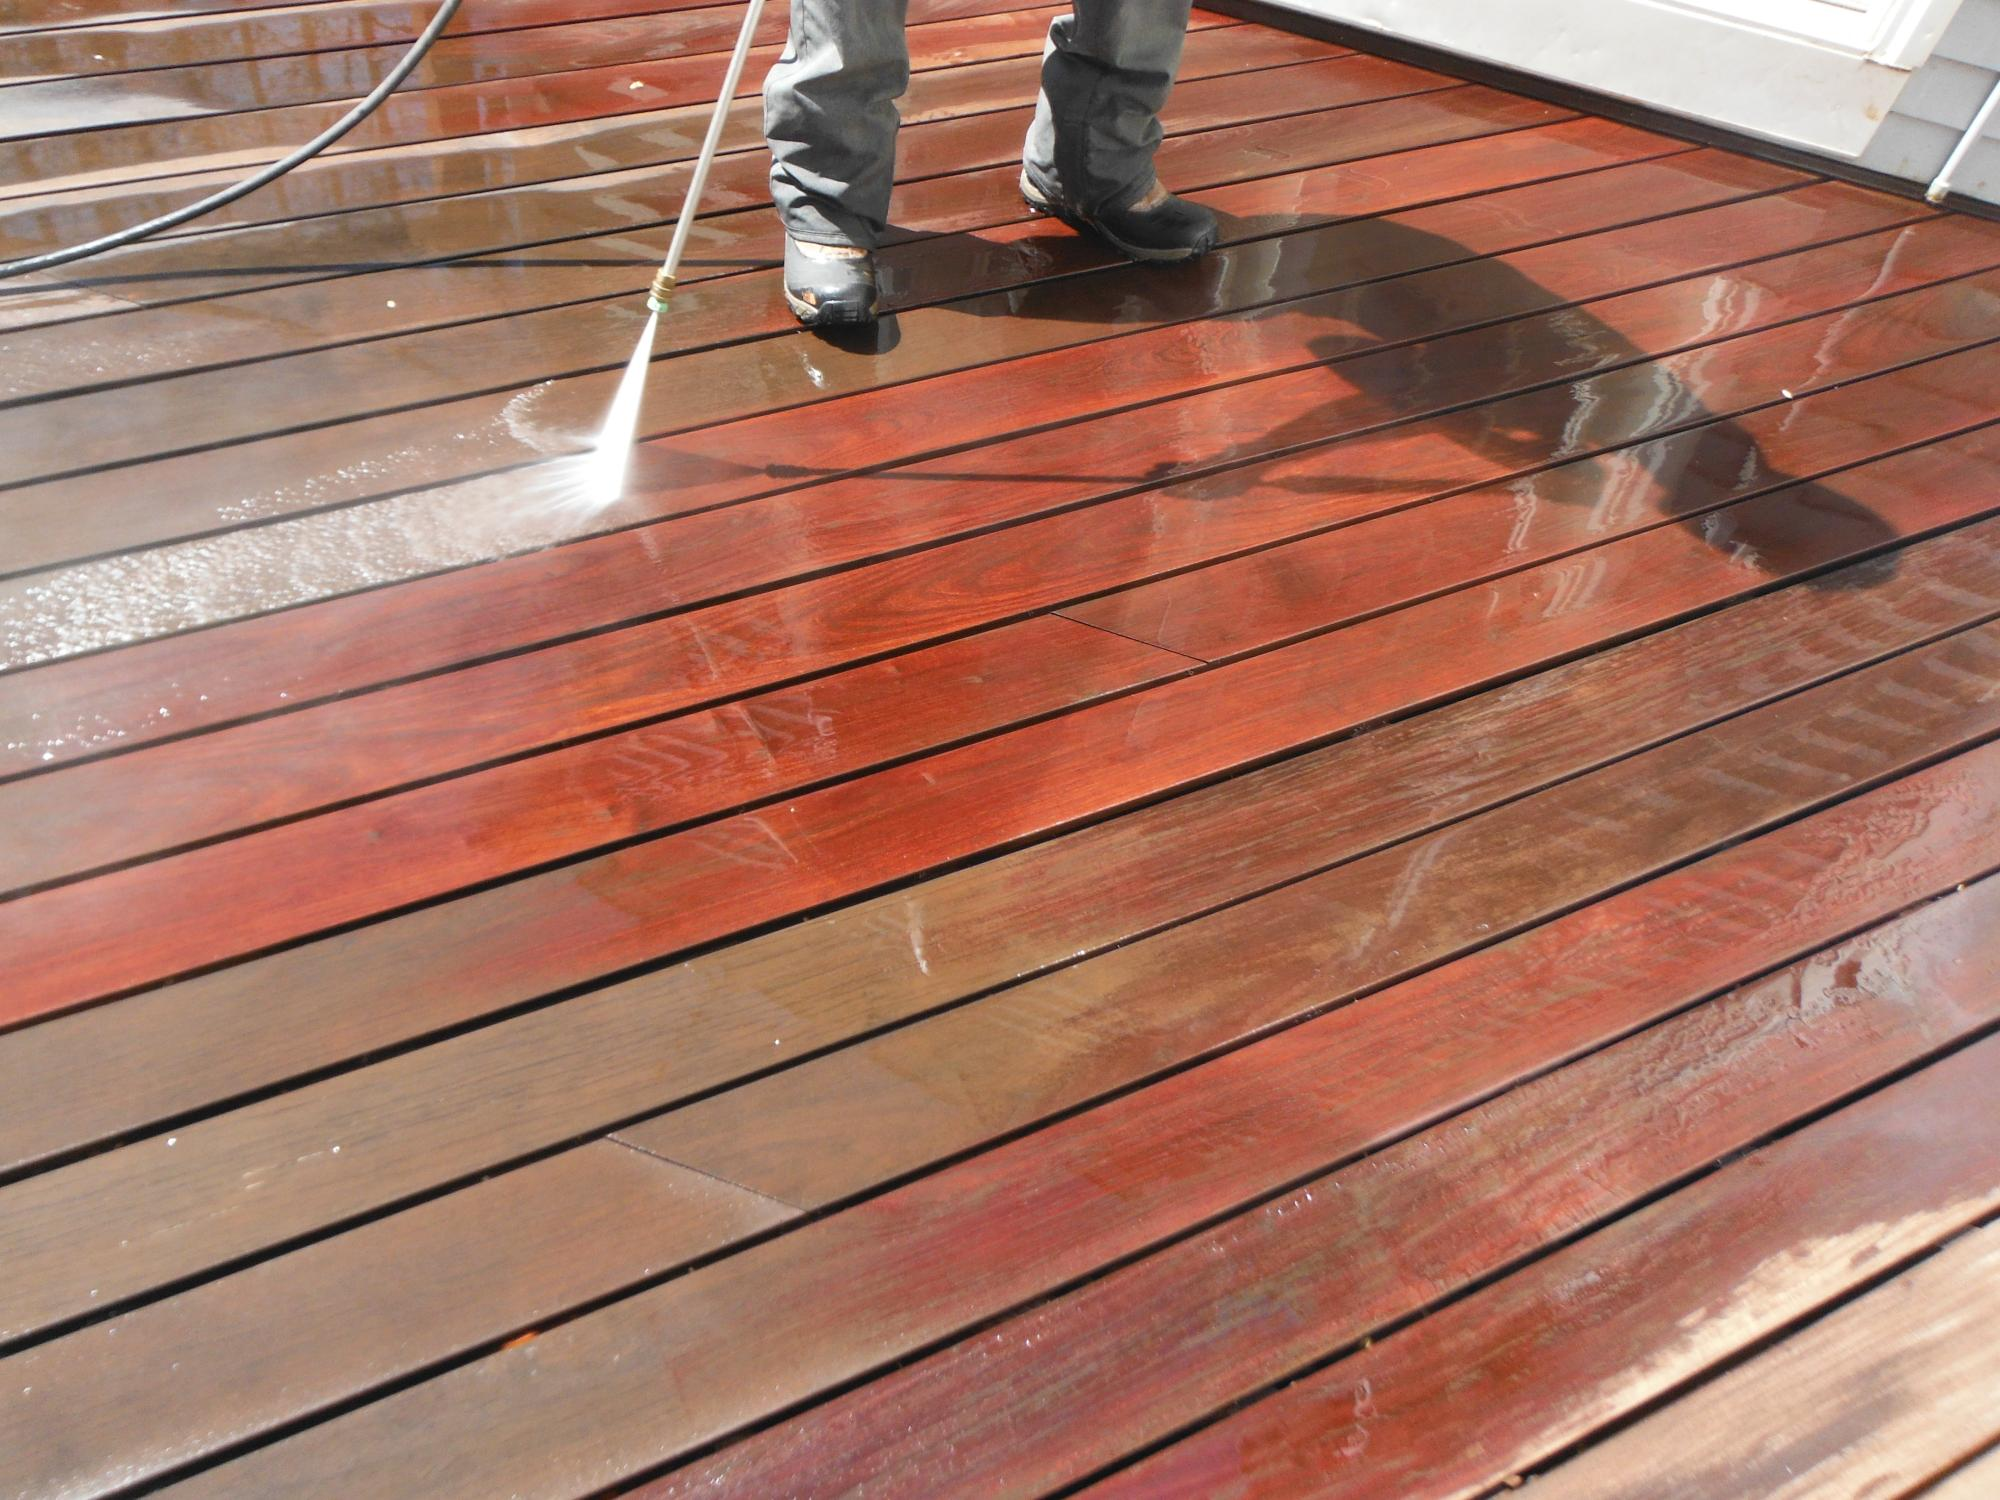 Cleaning IPE deck